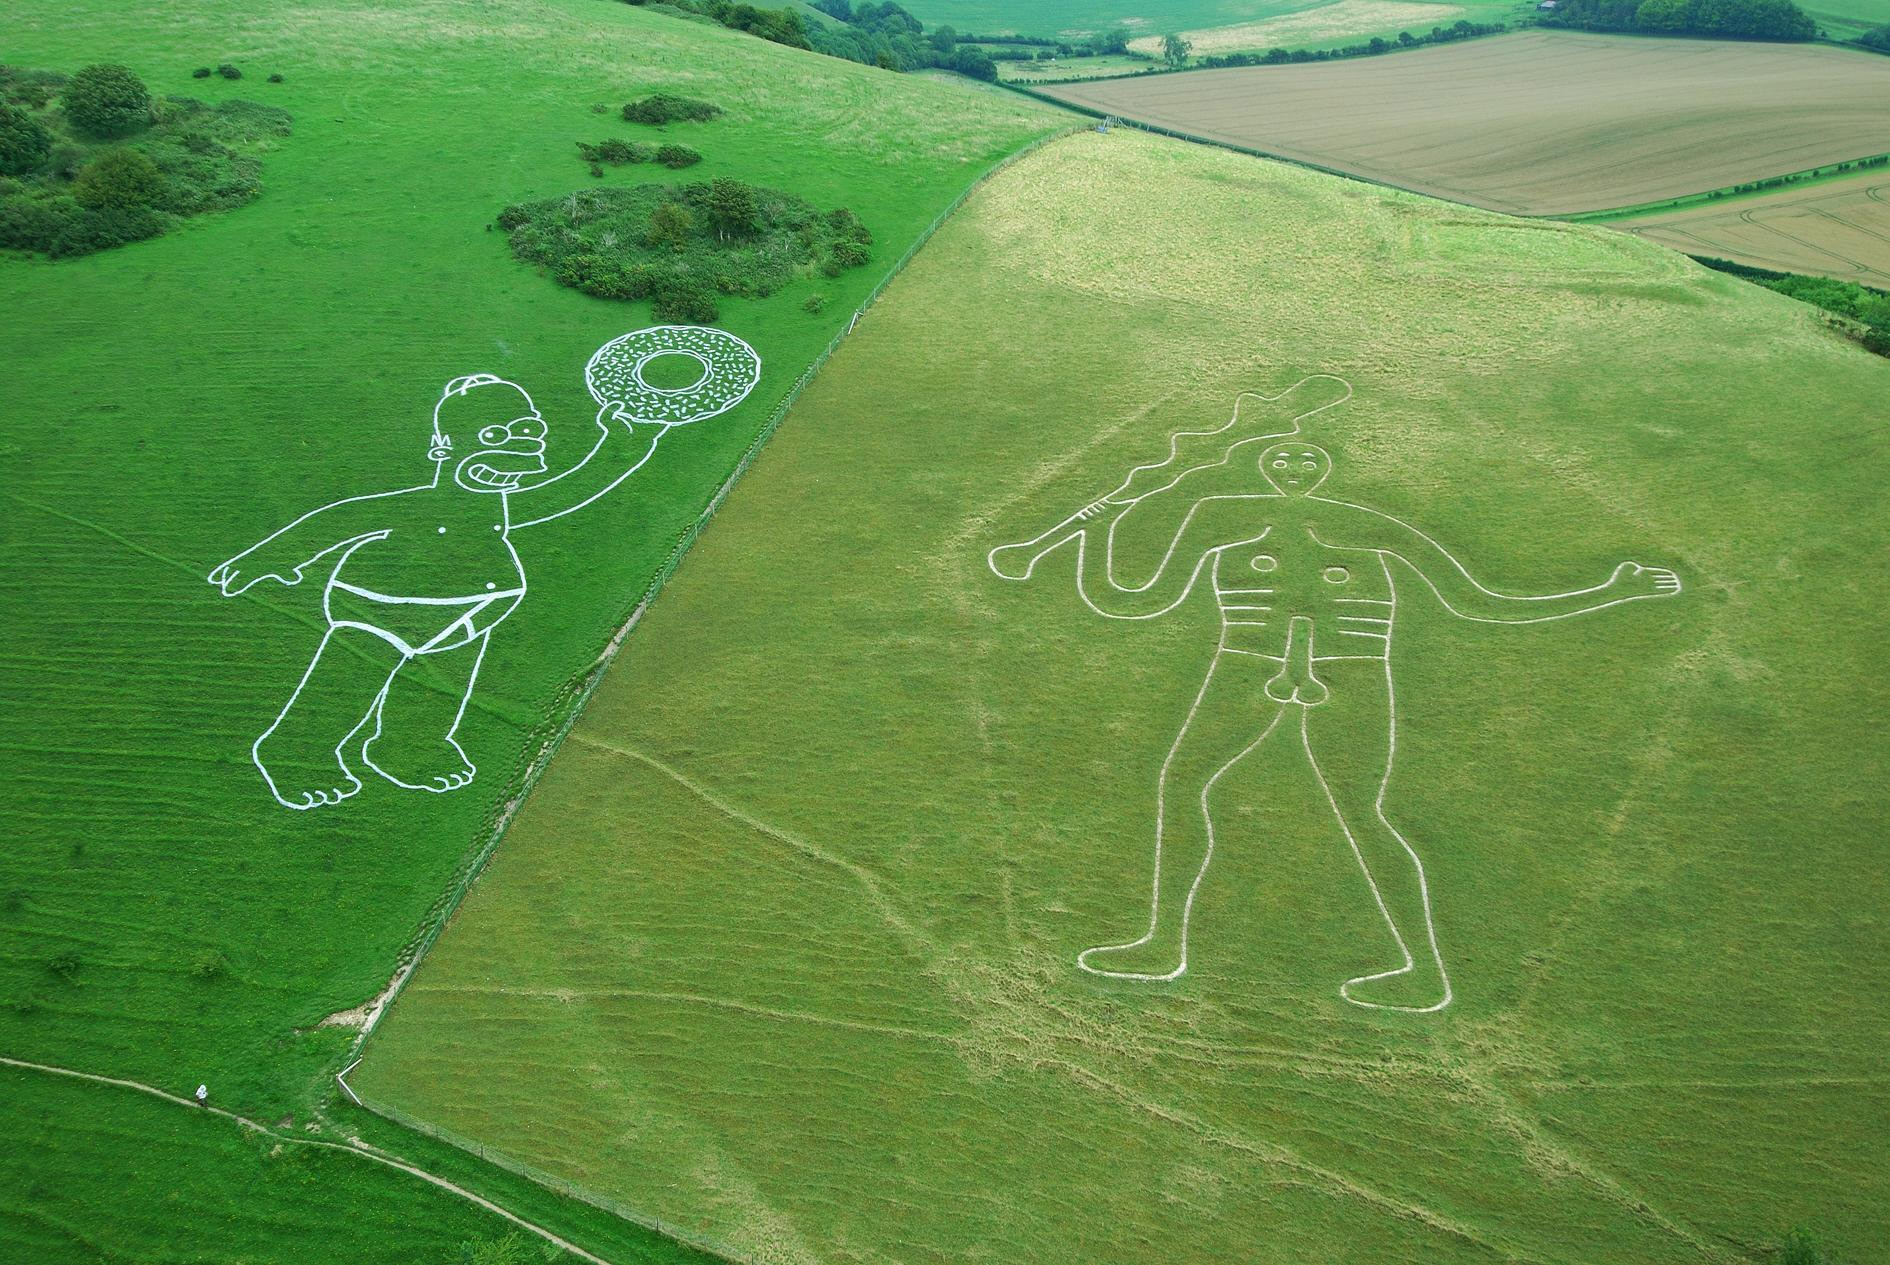 'Chalk' Homer appears next to Cerne Abbas giant